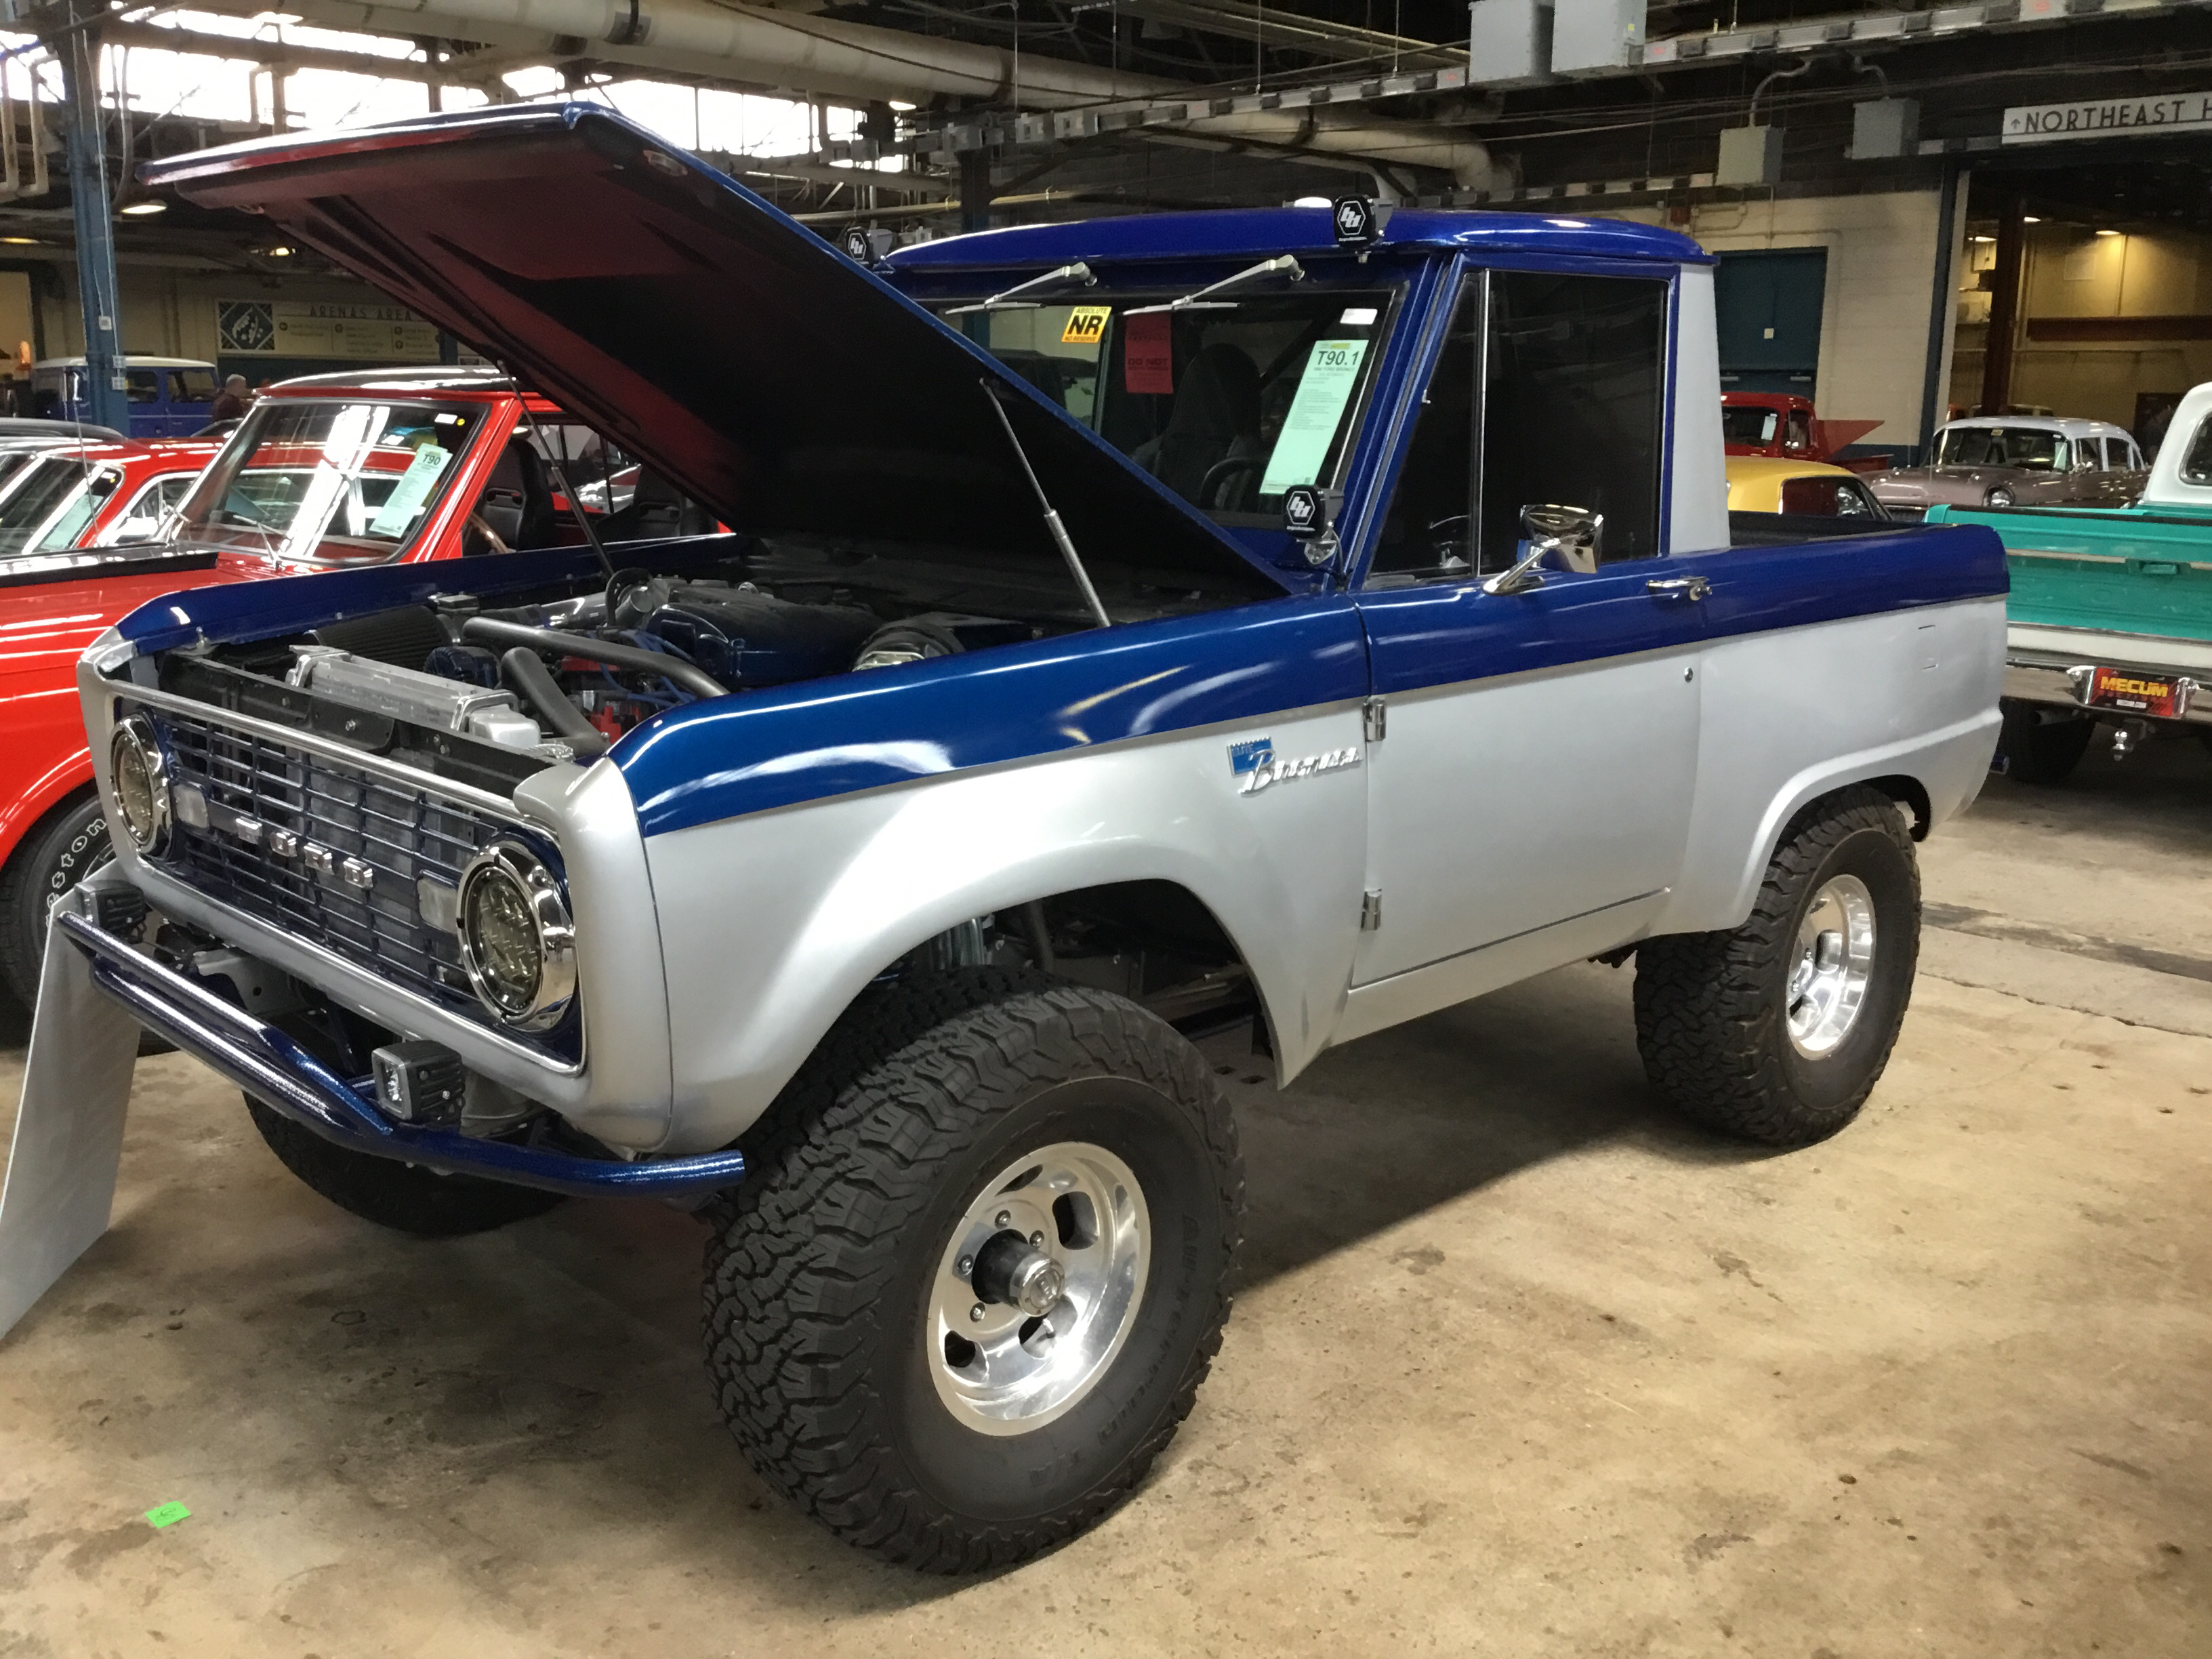 1966 Ford Bronco Values | Hagerty Valuation Tool®